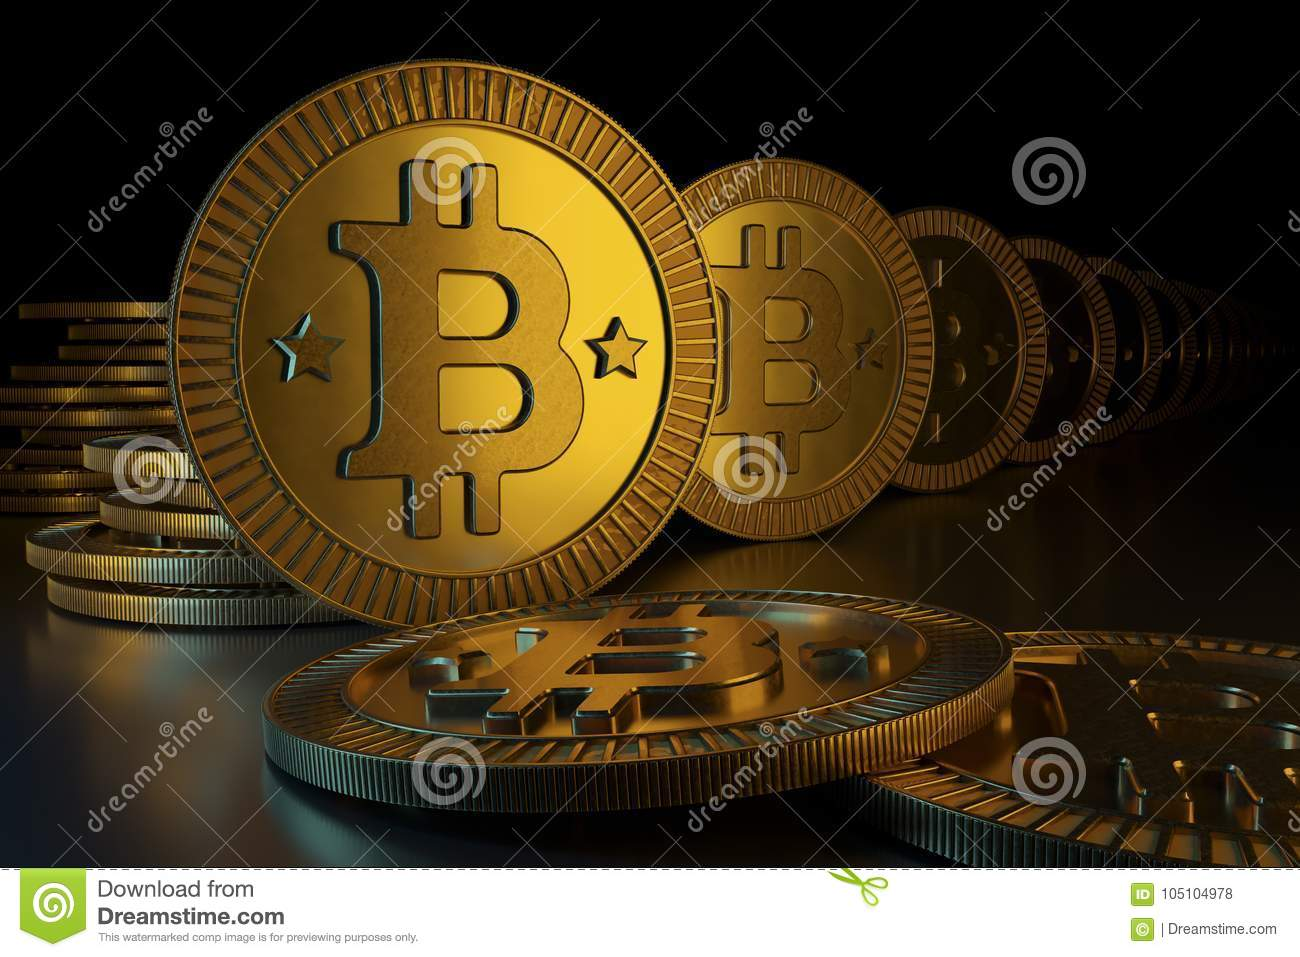 Forking crypto currency stocks top 10 betting companies uk yahoo